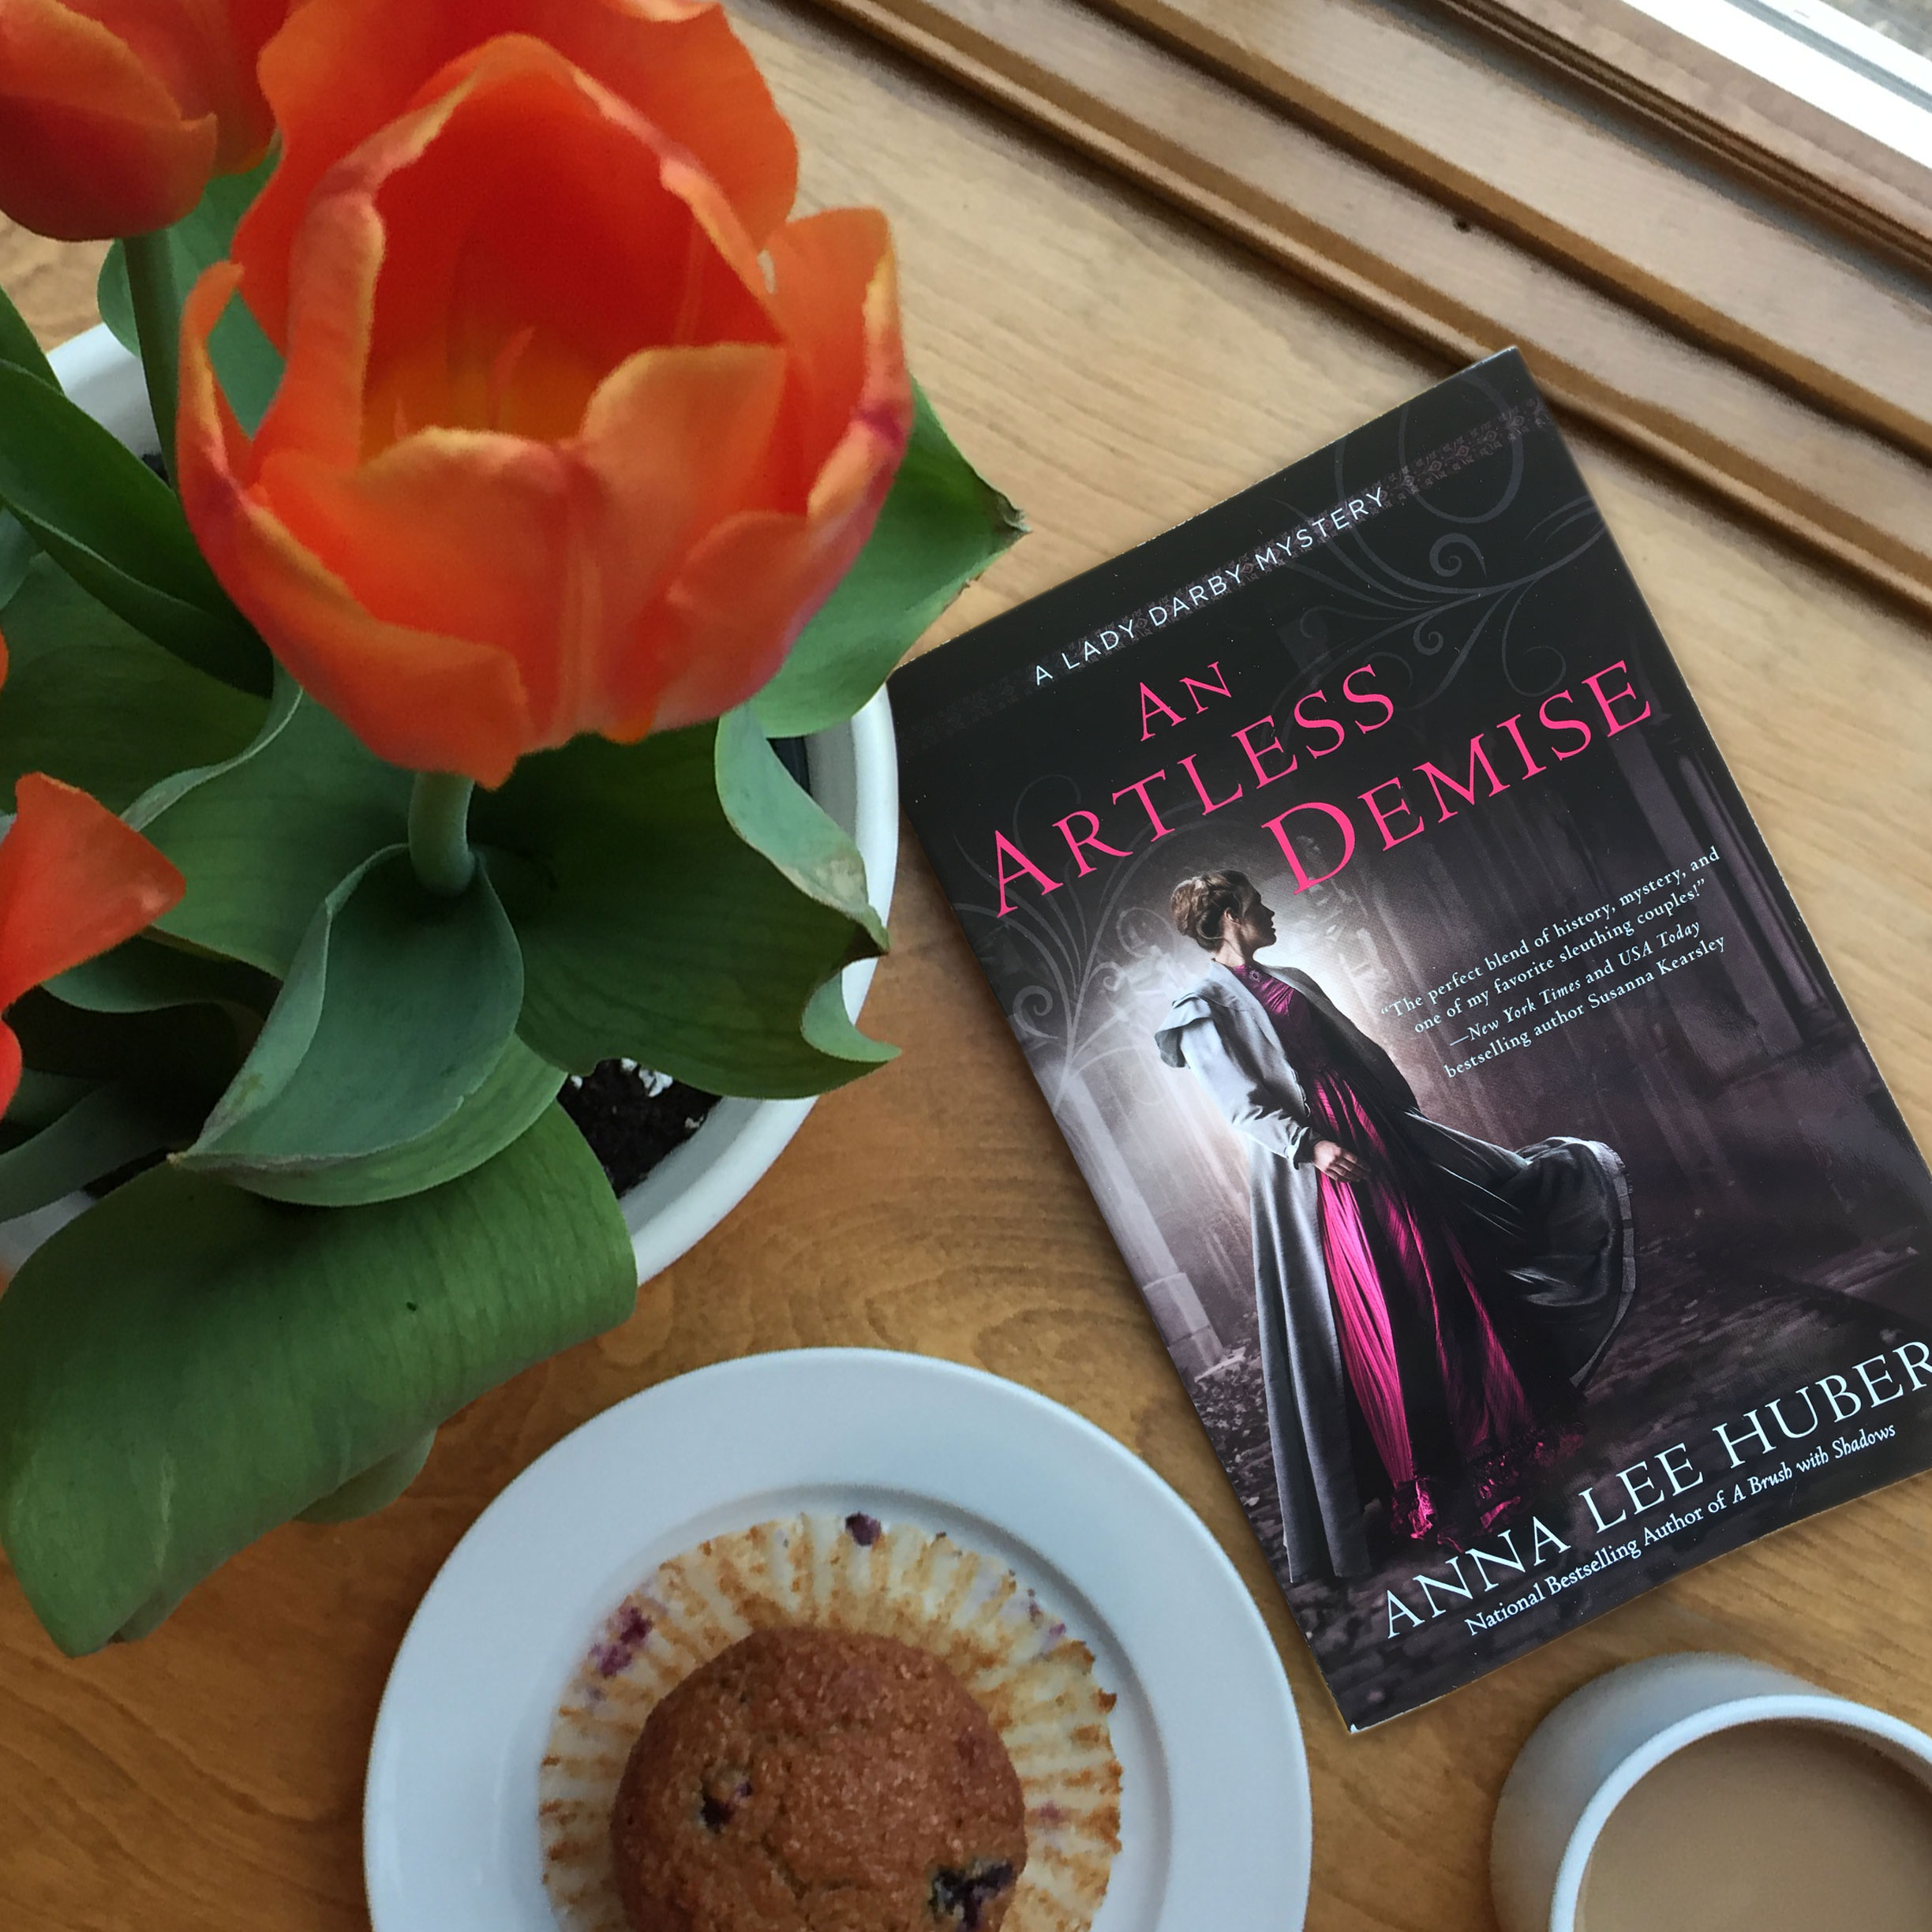 Book Review for AN ARTLESS DEMISE by Anna Lee Huber